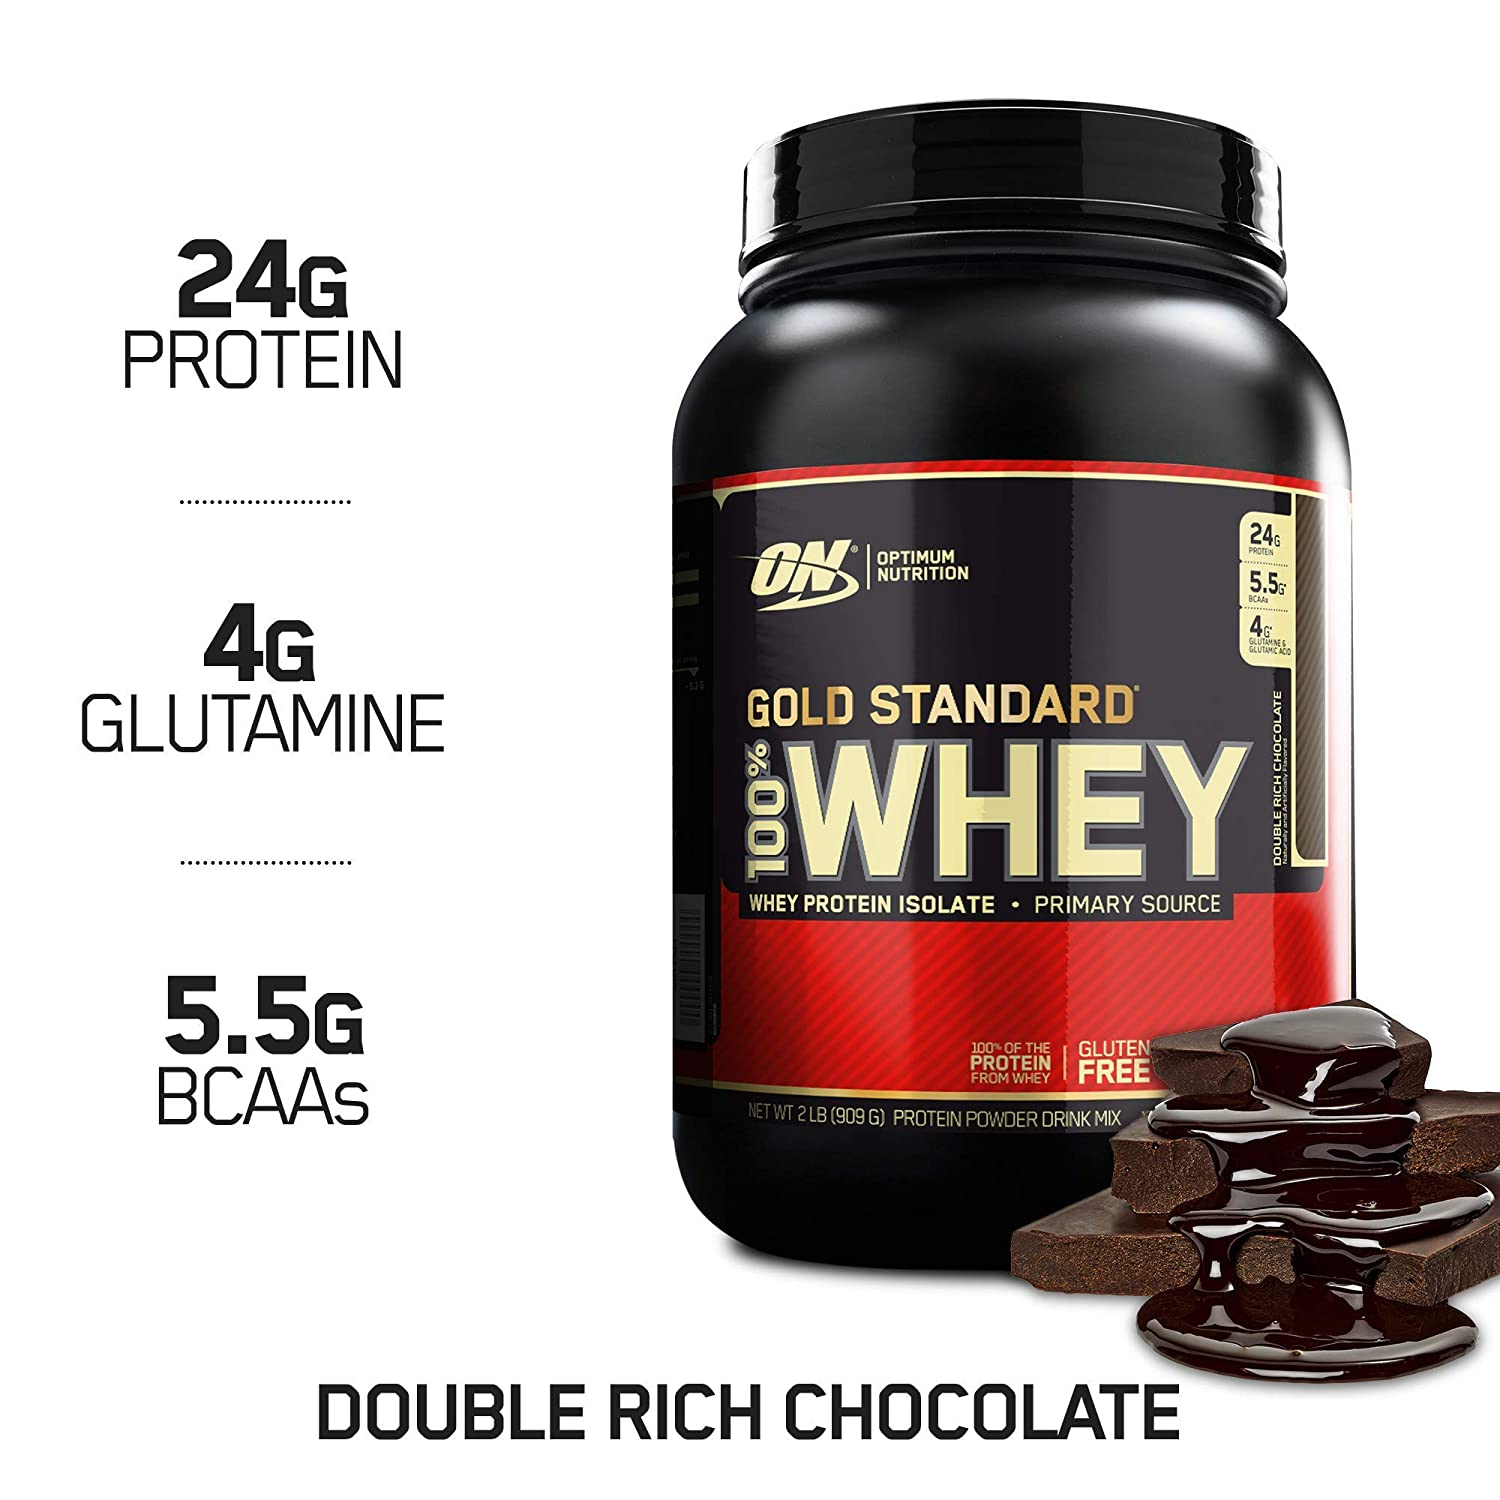 OPTIMUM NUTRITION GOLD STANDARD 100 Whey Protein Powder, Double Rich Chocolate 2 Pound